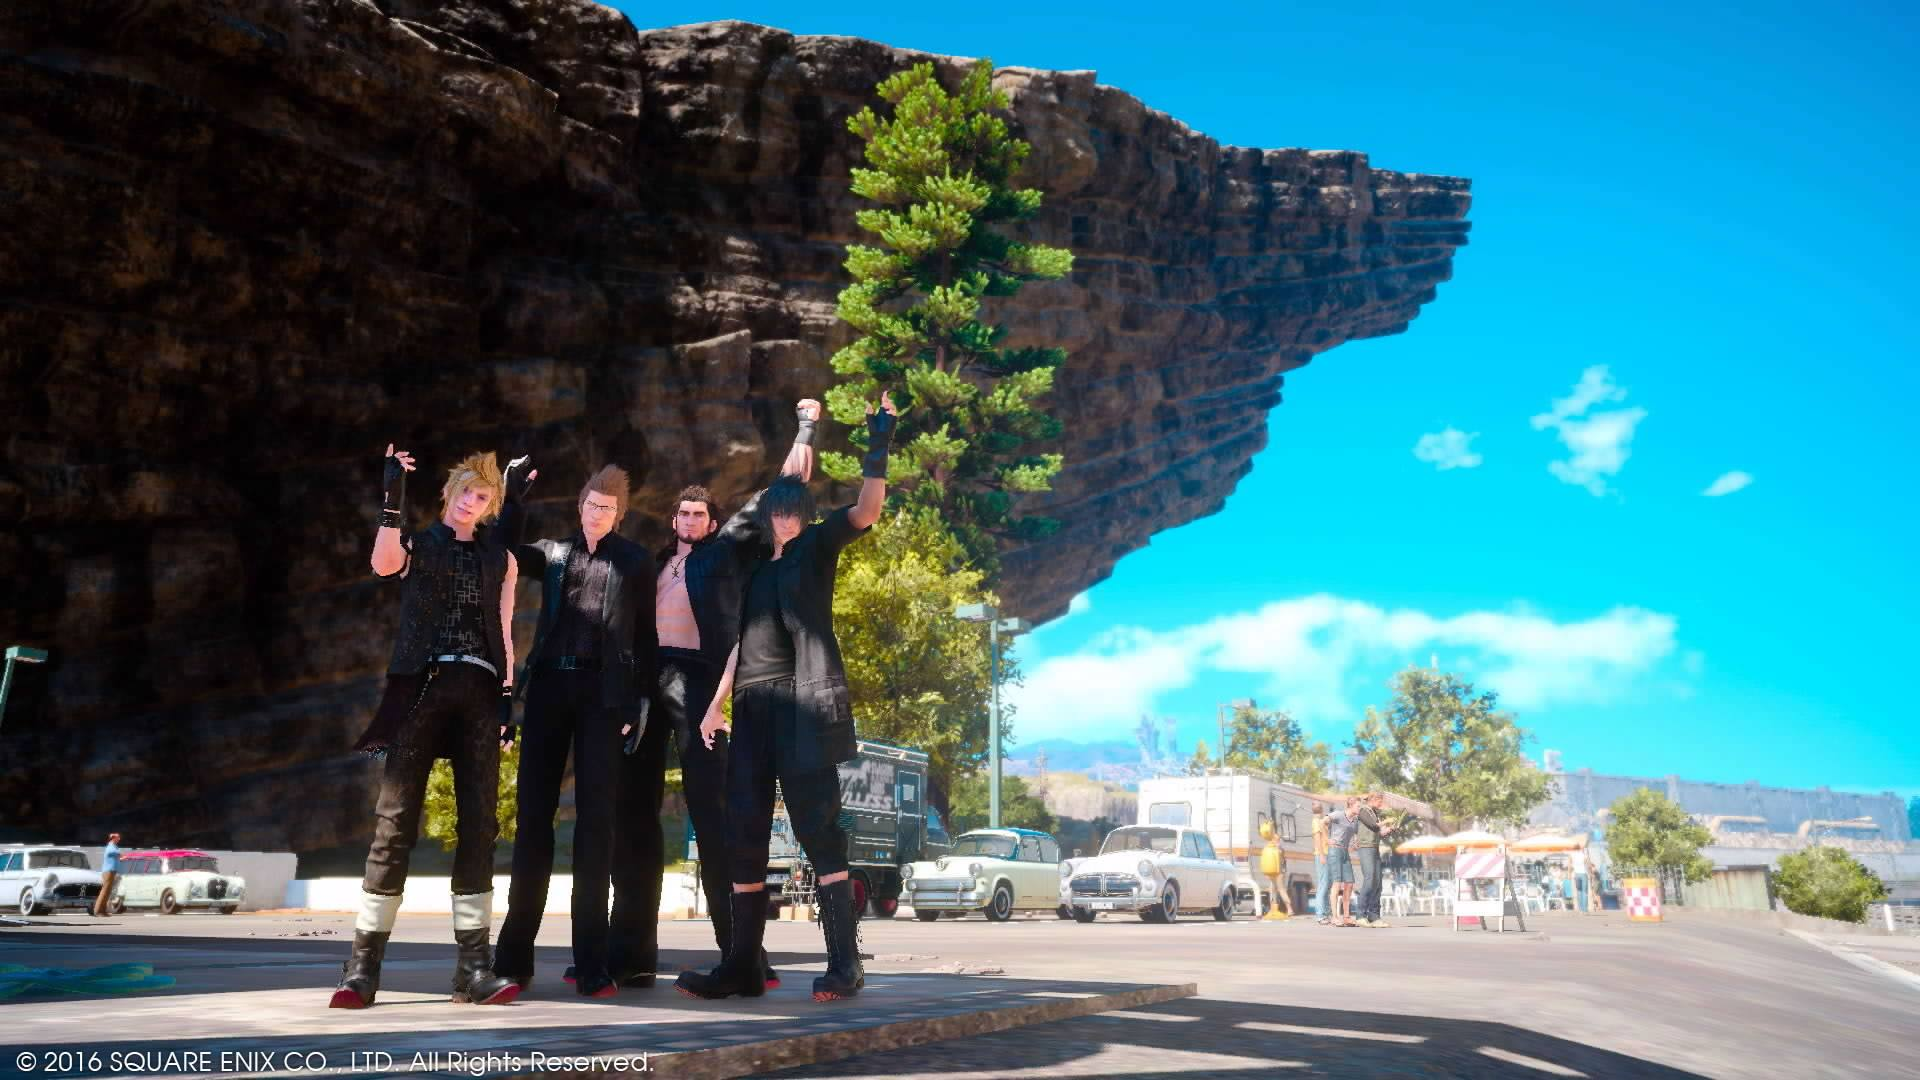 Final Fantasy XV sets you on a road trip with Noct and his three friends and protectors: Ignis, Gladiolus and Prompto.